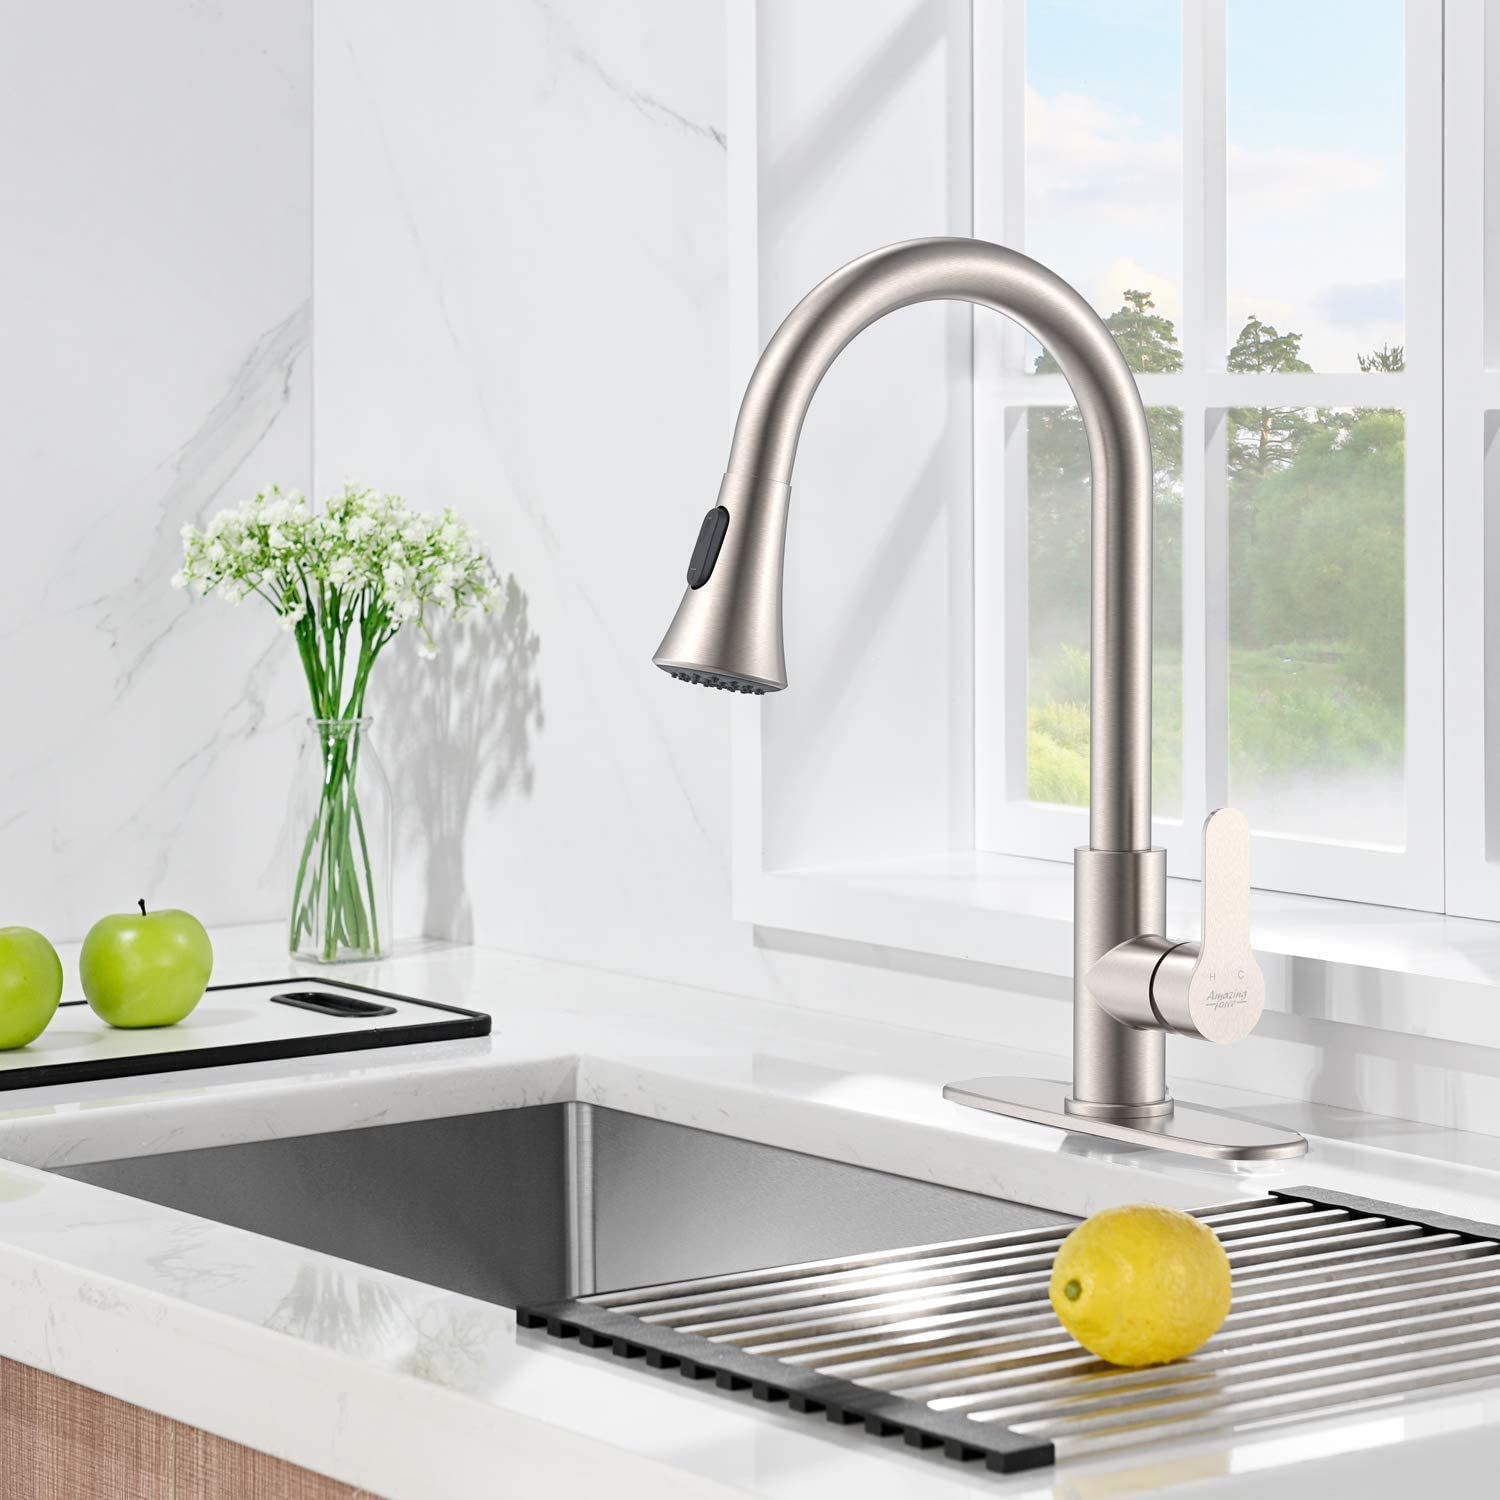 Amazing Force Brushed Nickel Kitchen Faucet With Pull Down Sprayer Kitchen Sink Faucet Single Handle Kitchen Faucet Brushed Nickel Utility Sink Faucet For Laundry Sink Stainless Steel Amazon Com